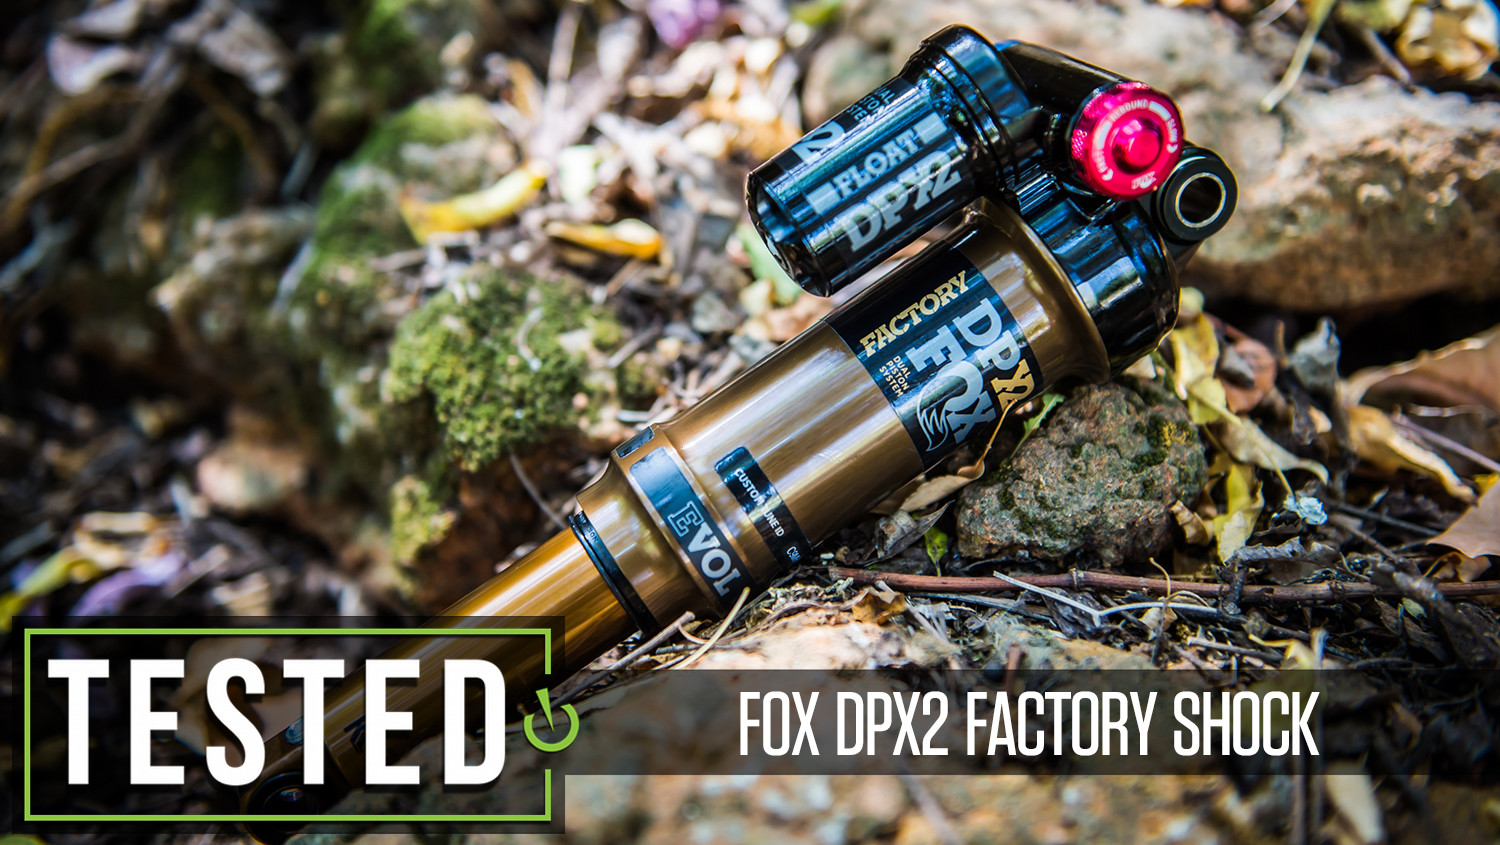 Tested: FOX DPX2 Factory Shock